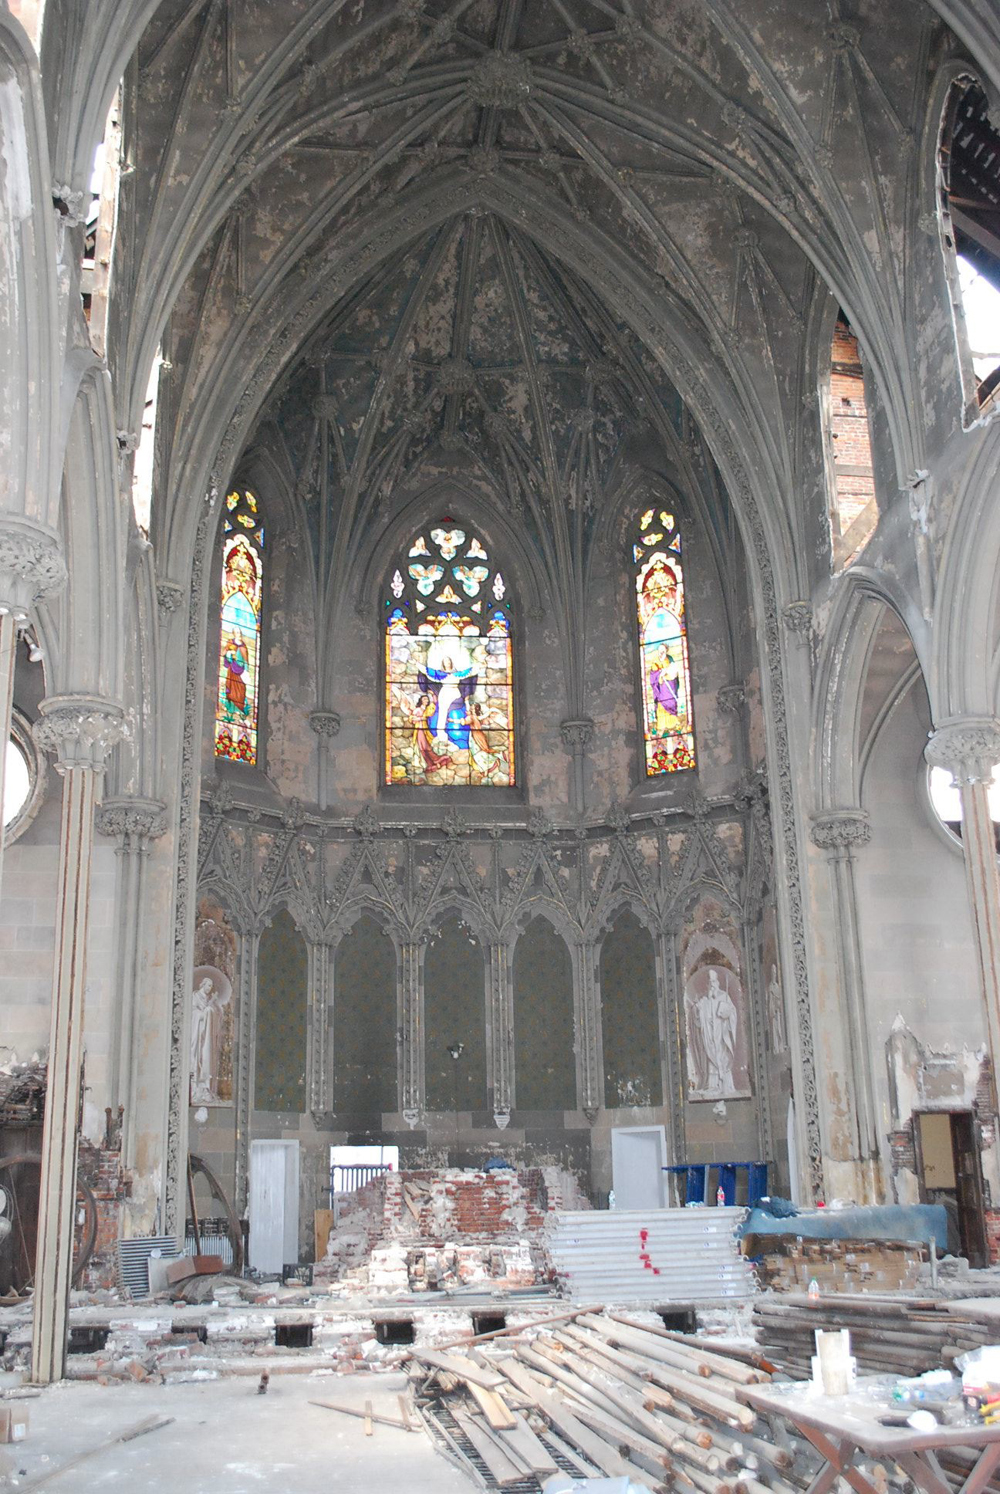 A view of the church after interior demolition began.